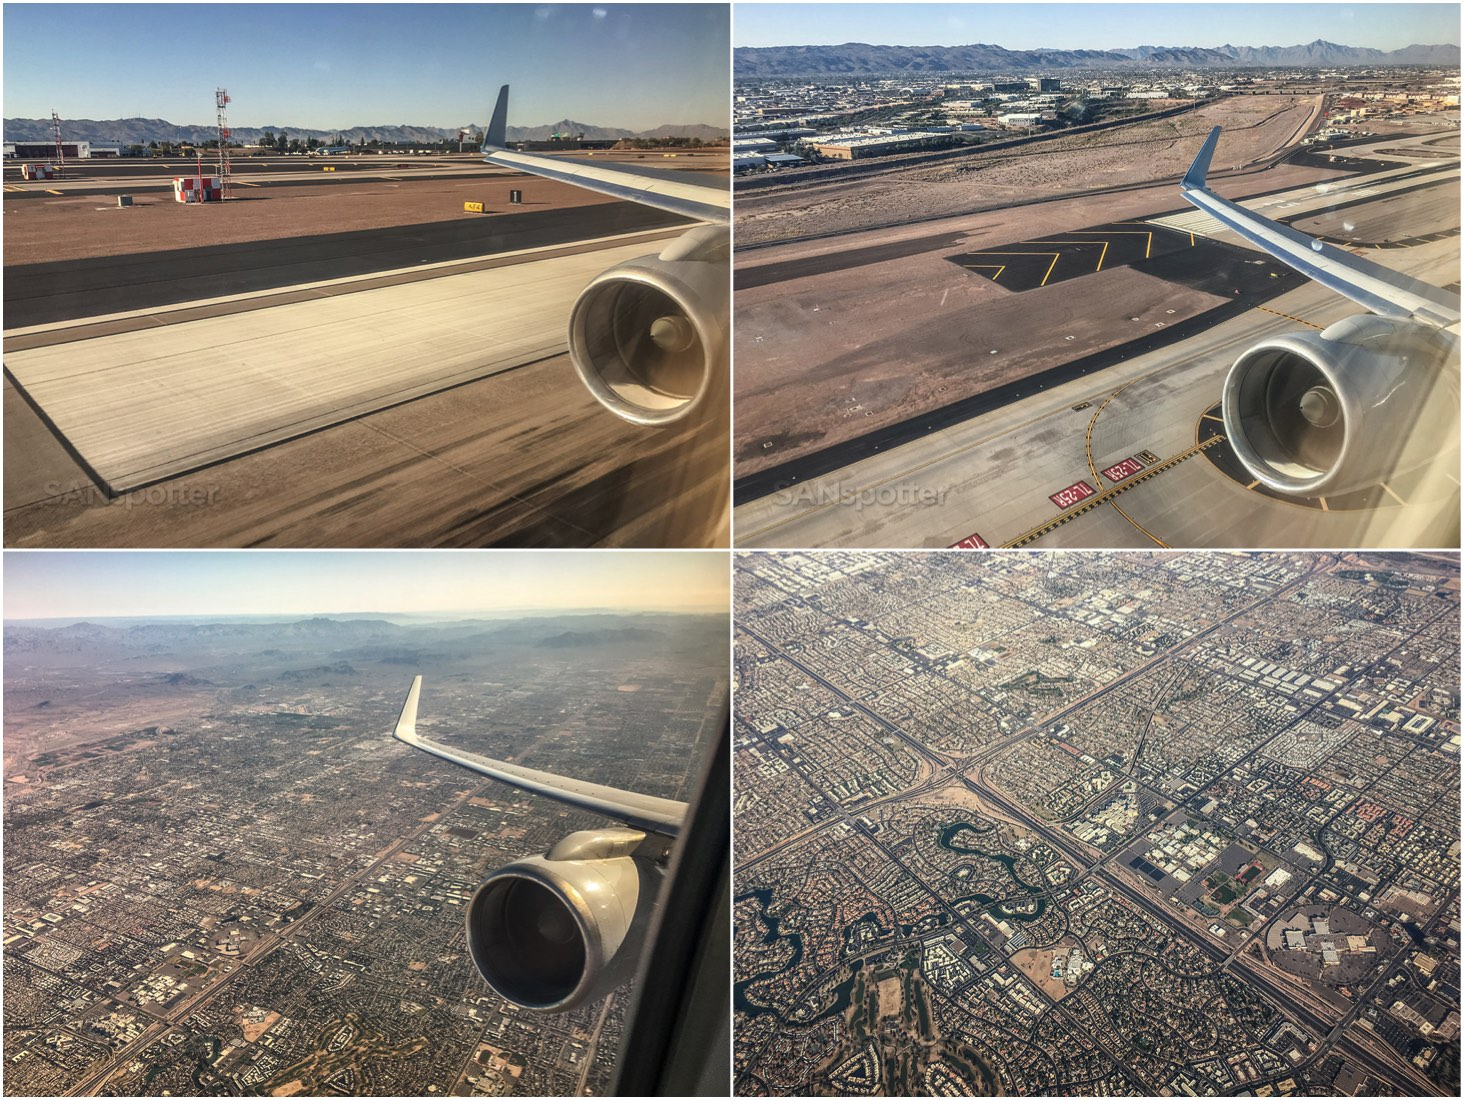 Taking off from PHX